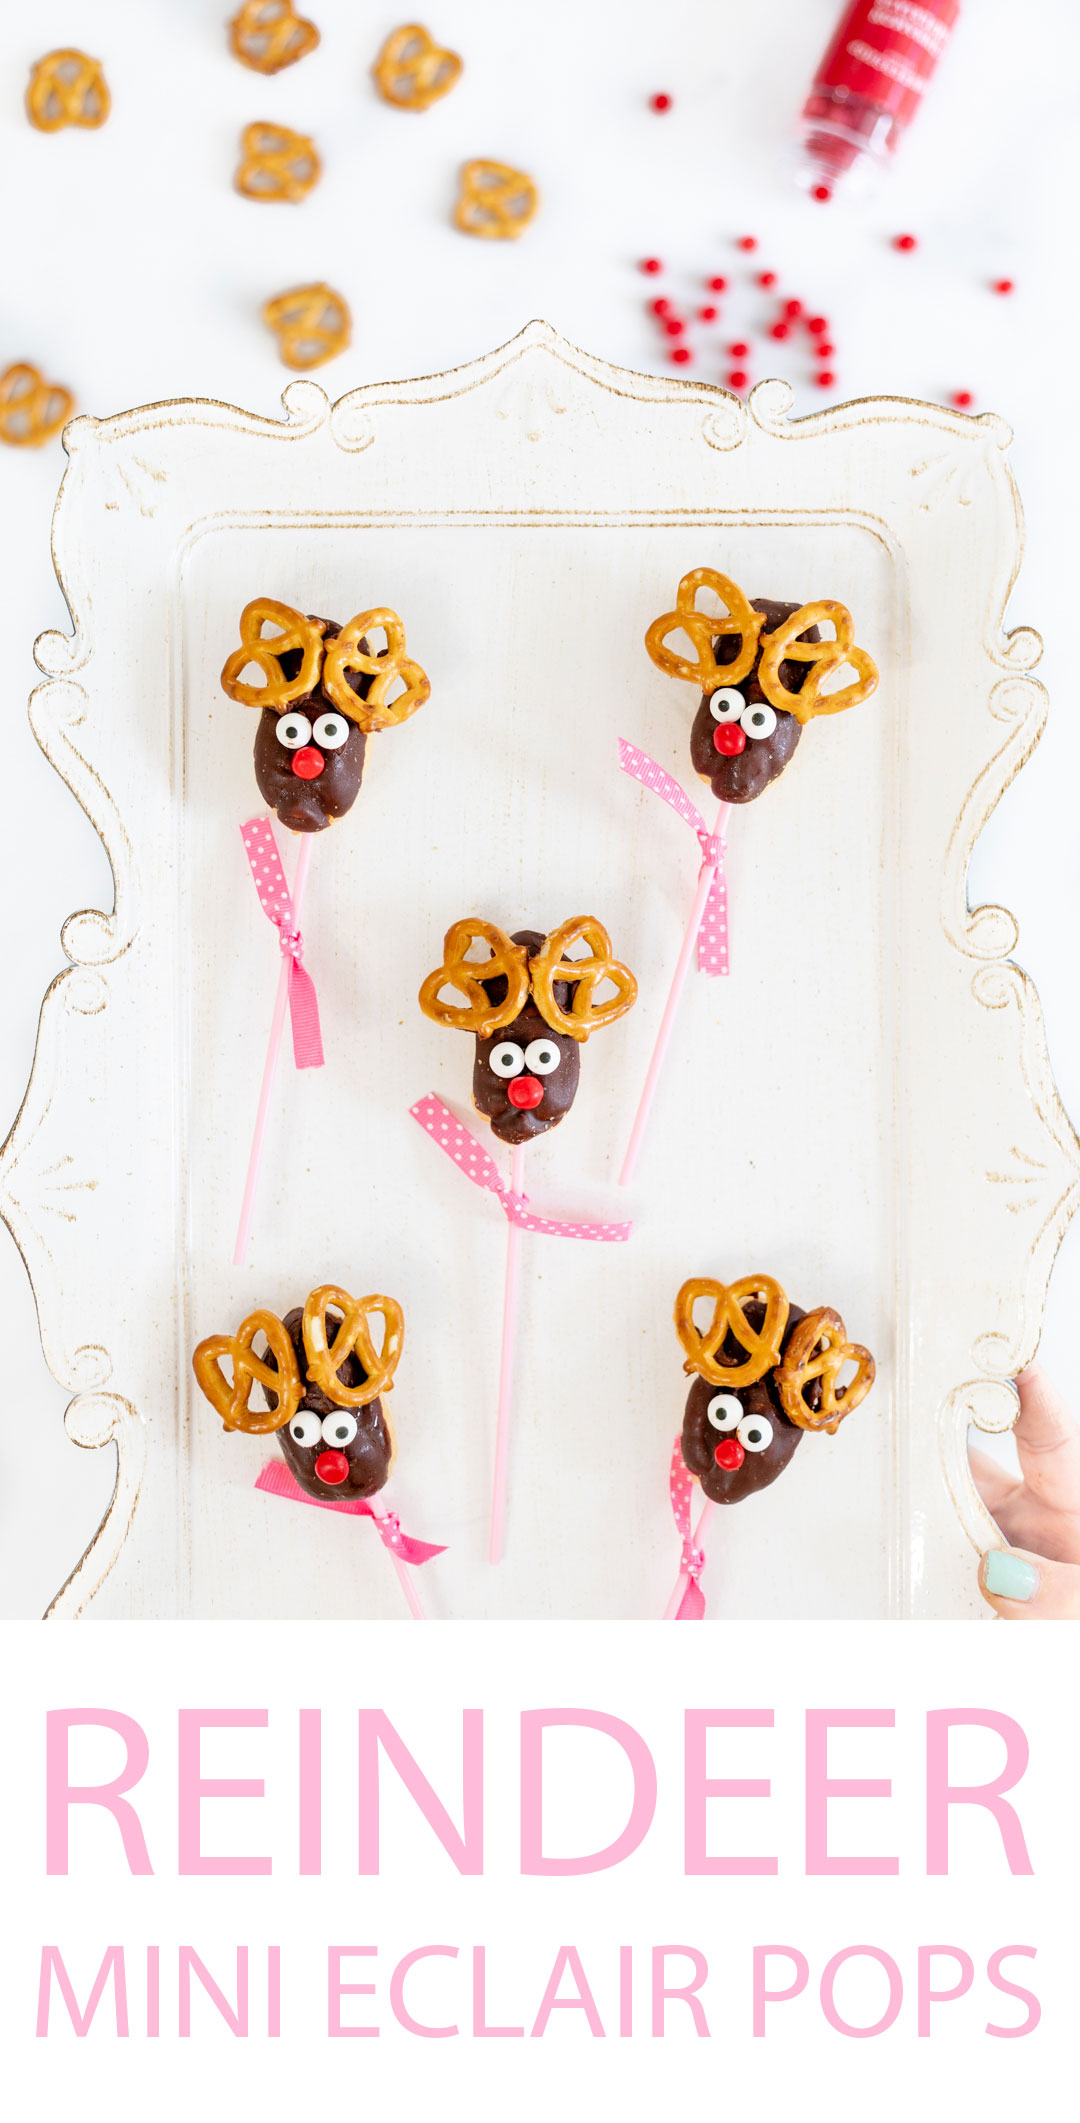 Reindeer Pops made with mini eclairs.